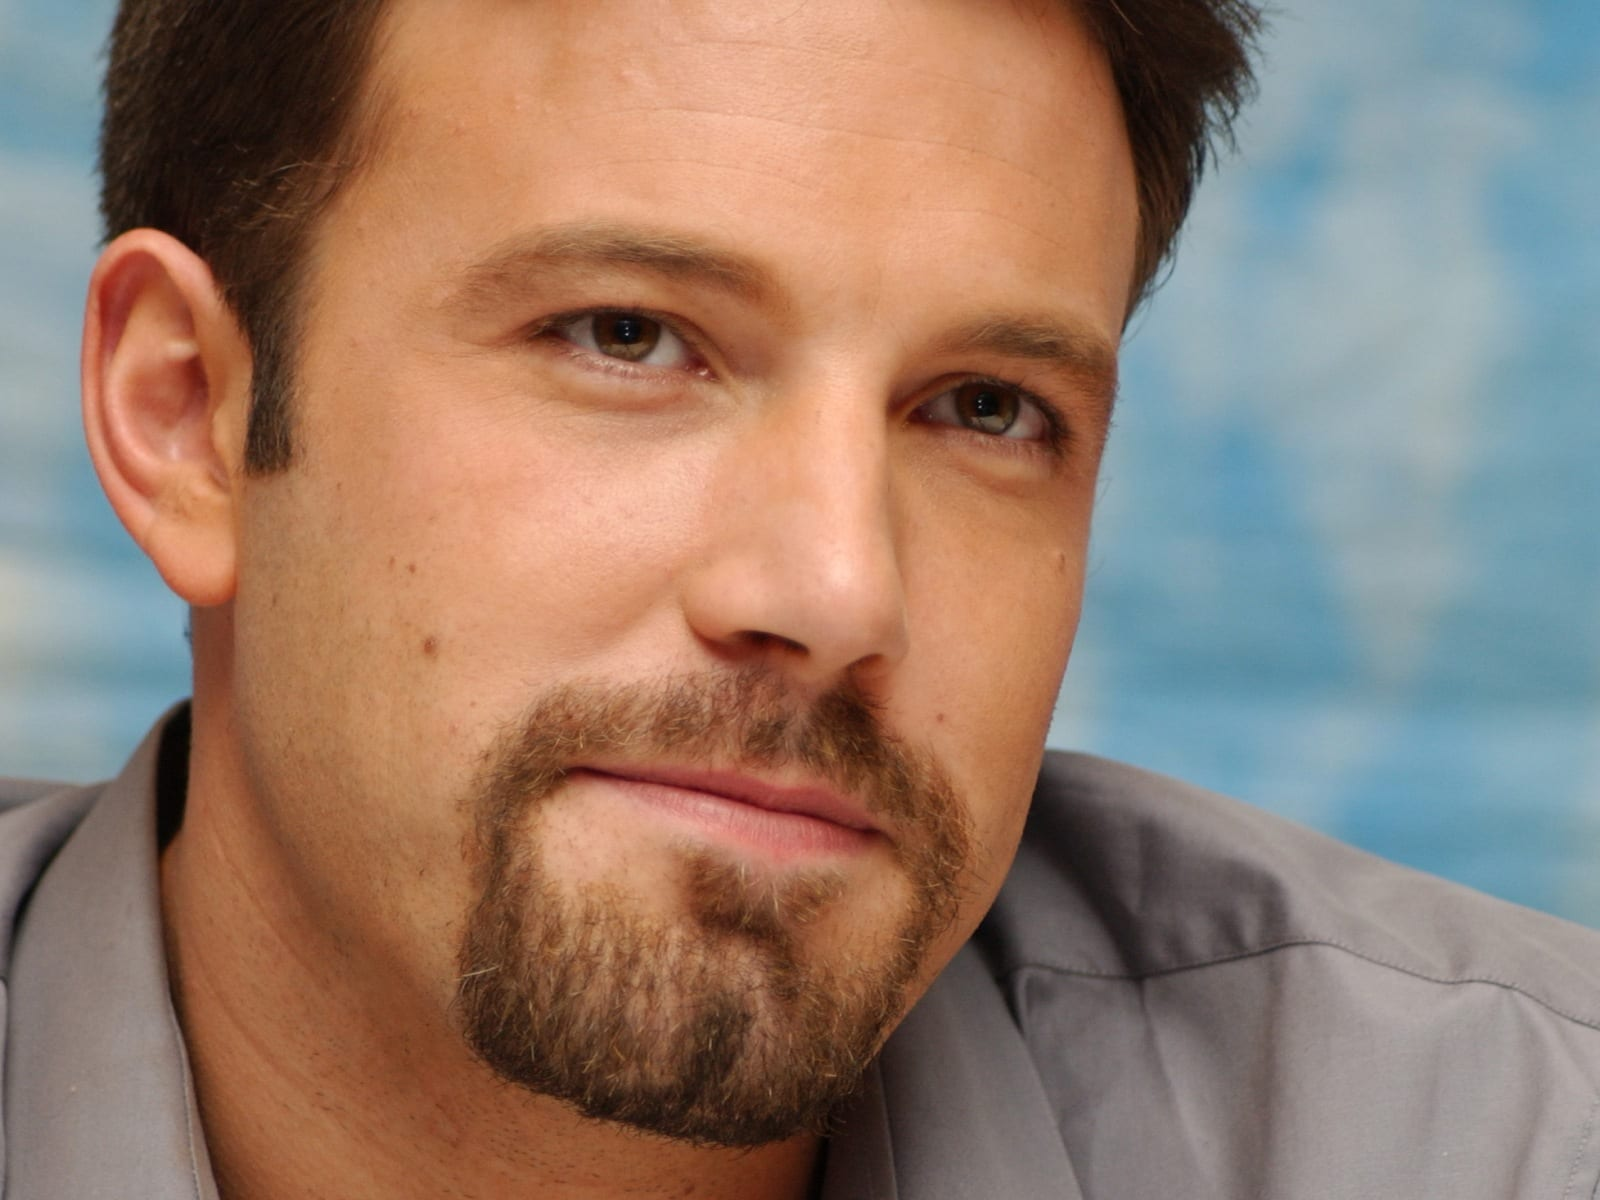 Goatee bearded men ben affleck